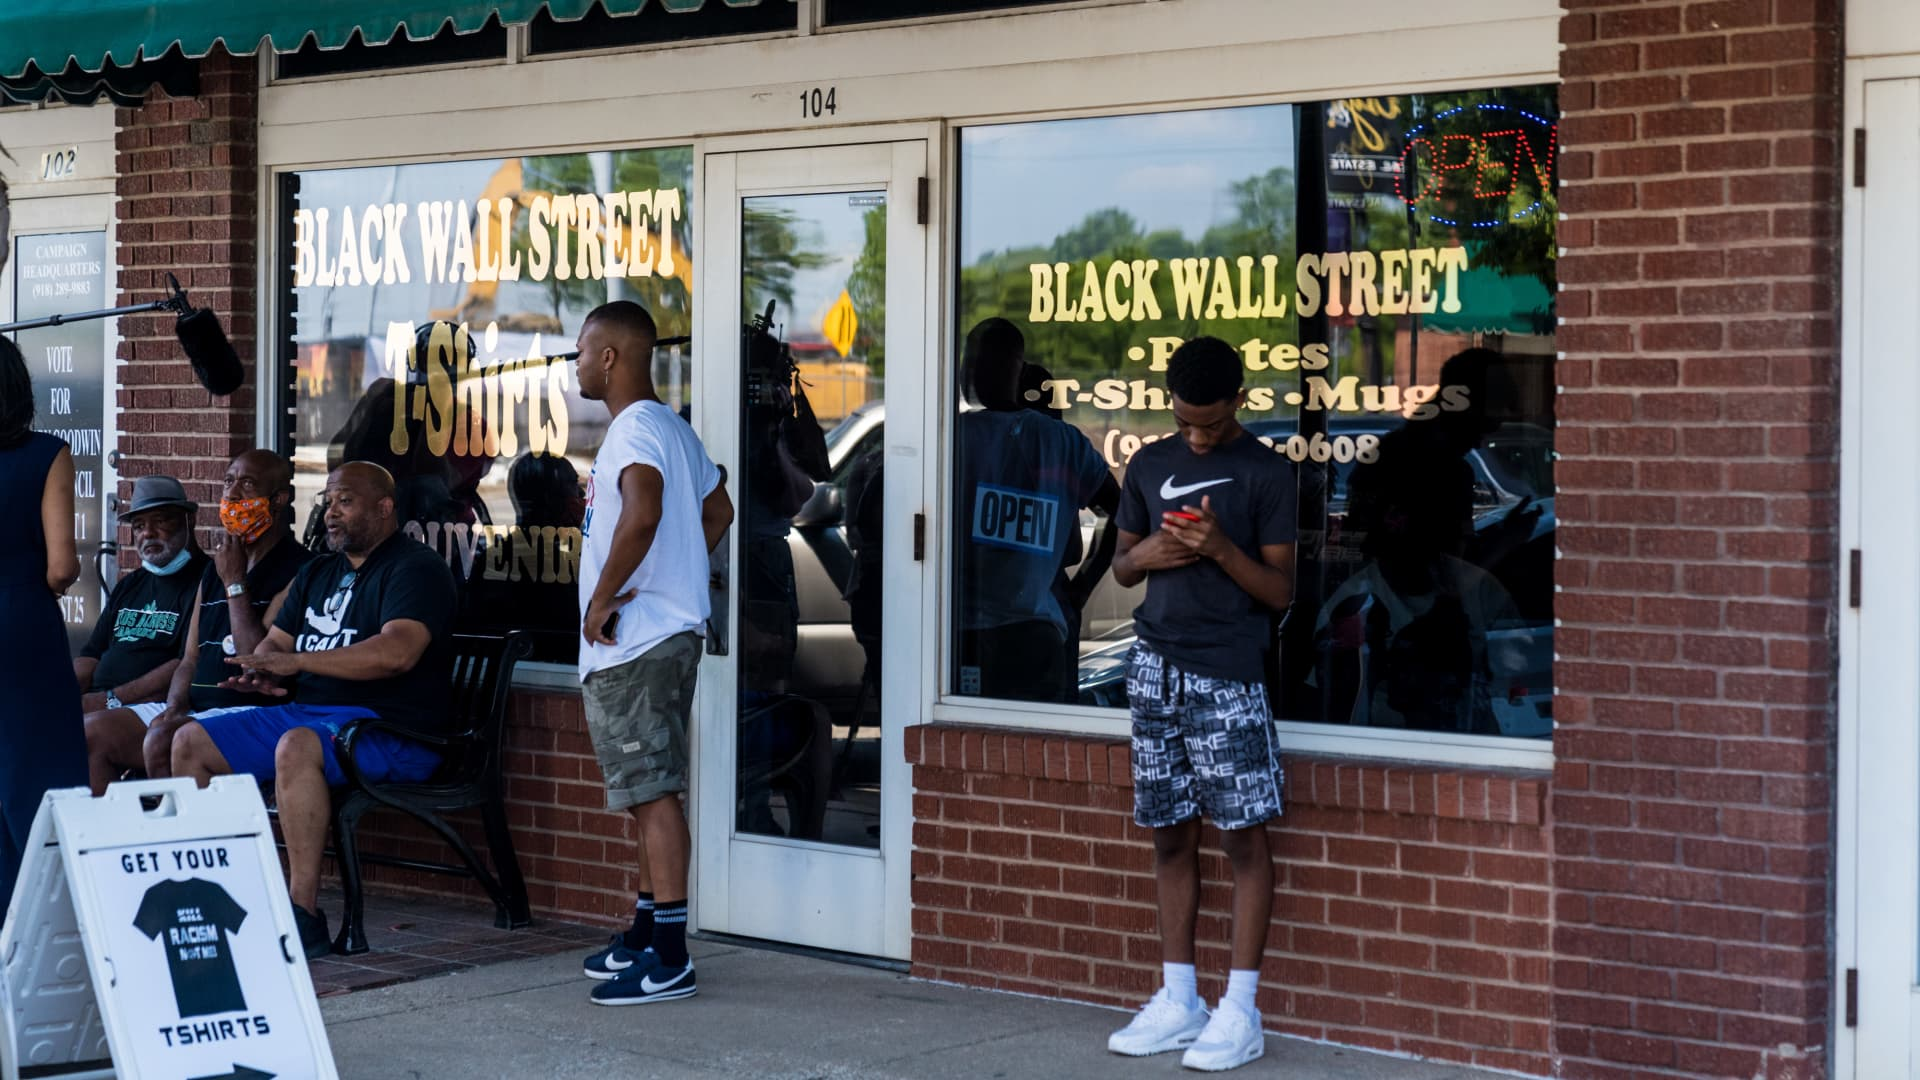 People stand outside the Black Wall Street T-Shirts and Souvenirs store at North Greenwood Avenue in the Greenwood District of Tulsa Oklahoma, U.S., on Thursday, June 18, 2020.